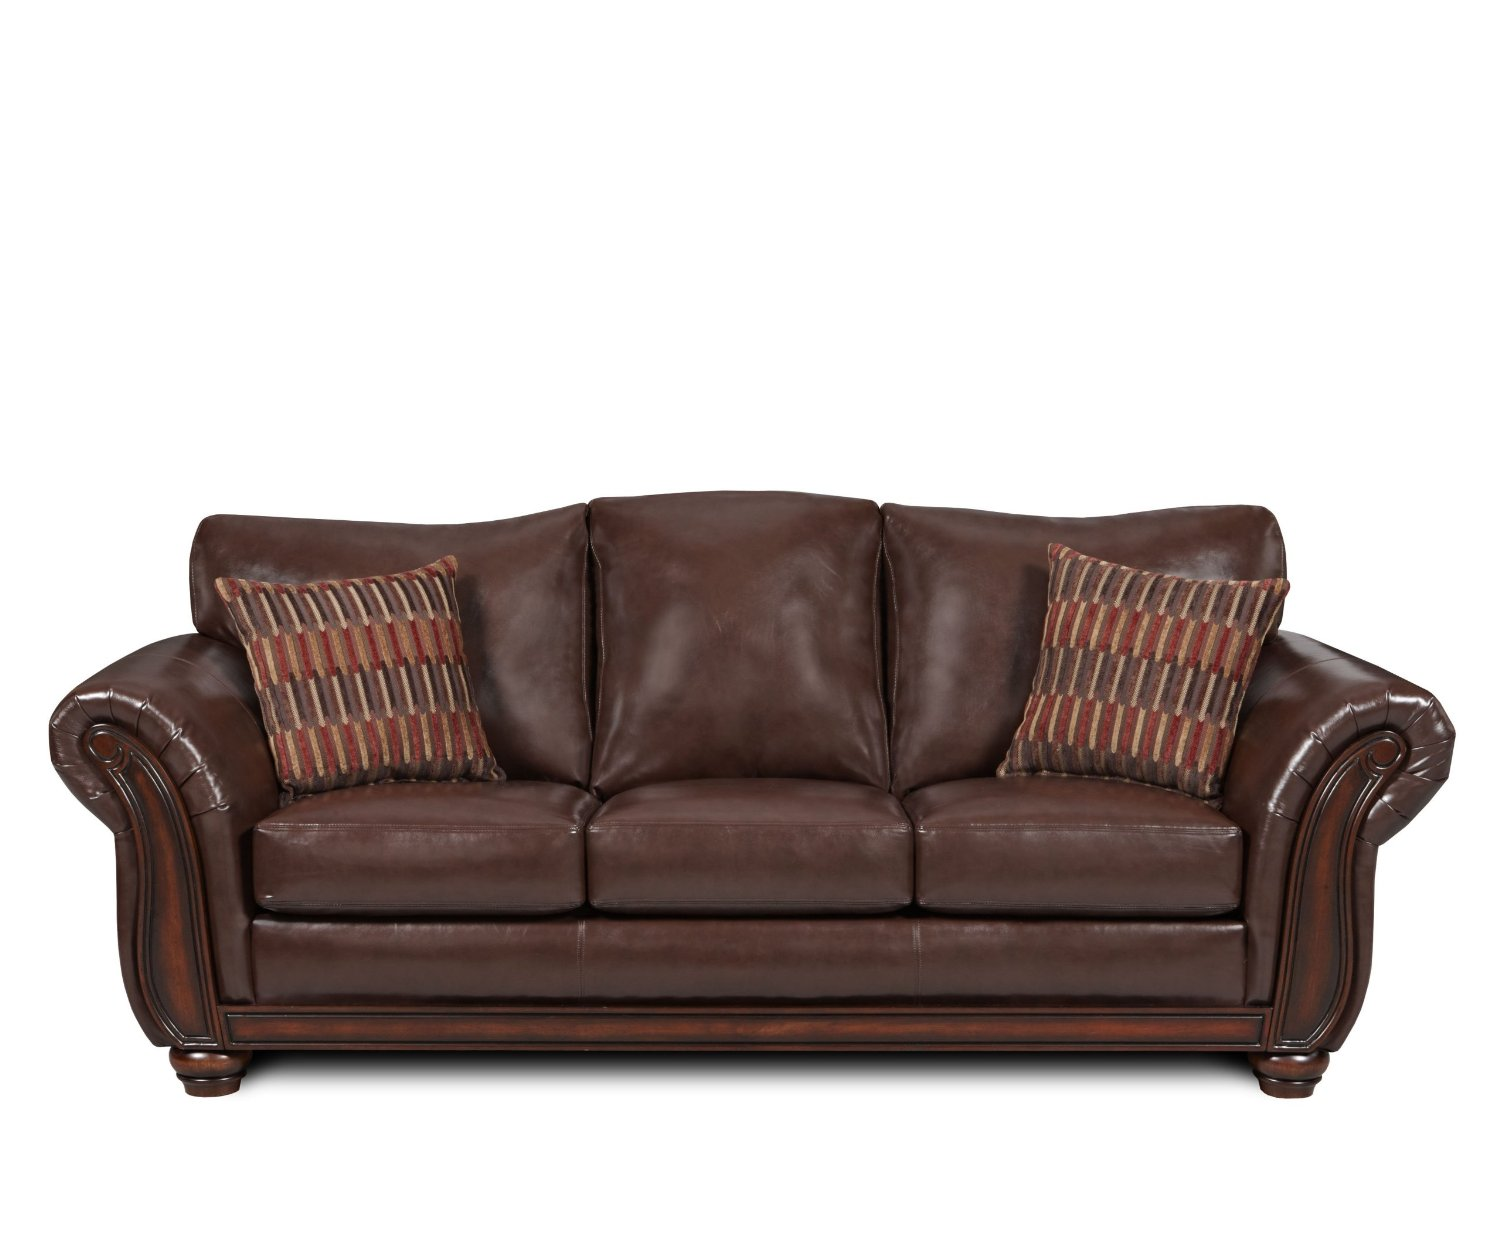 Leather couch furniture guide leather for Leather furniture